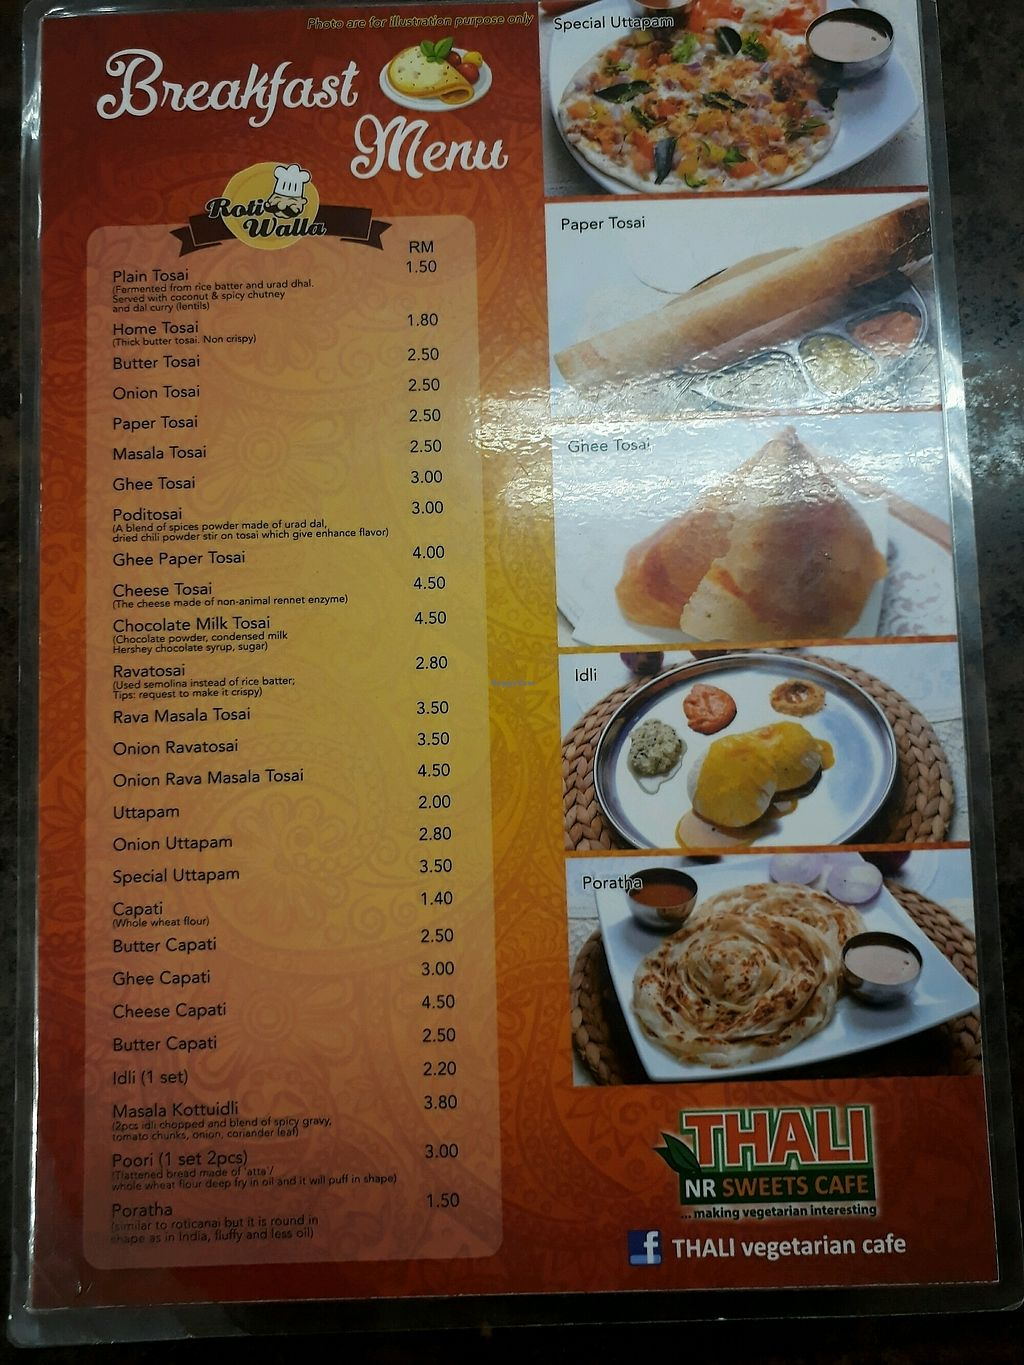 """Photo of Thali NR Sweets Cafe  by <a href=""""/members/profile/LilacHippy"""">LilacHippy</a> <br/>Breakfast Menu <br/> October 28, 2017  - <a href='/contact/abuse/image/36947/319583'>Report</a>"""